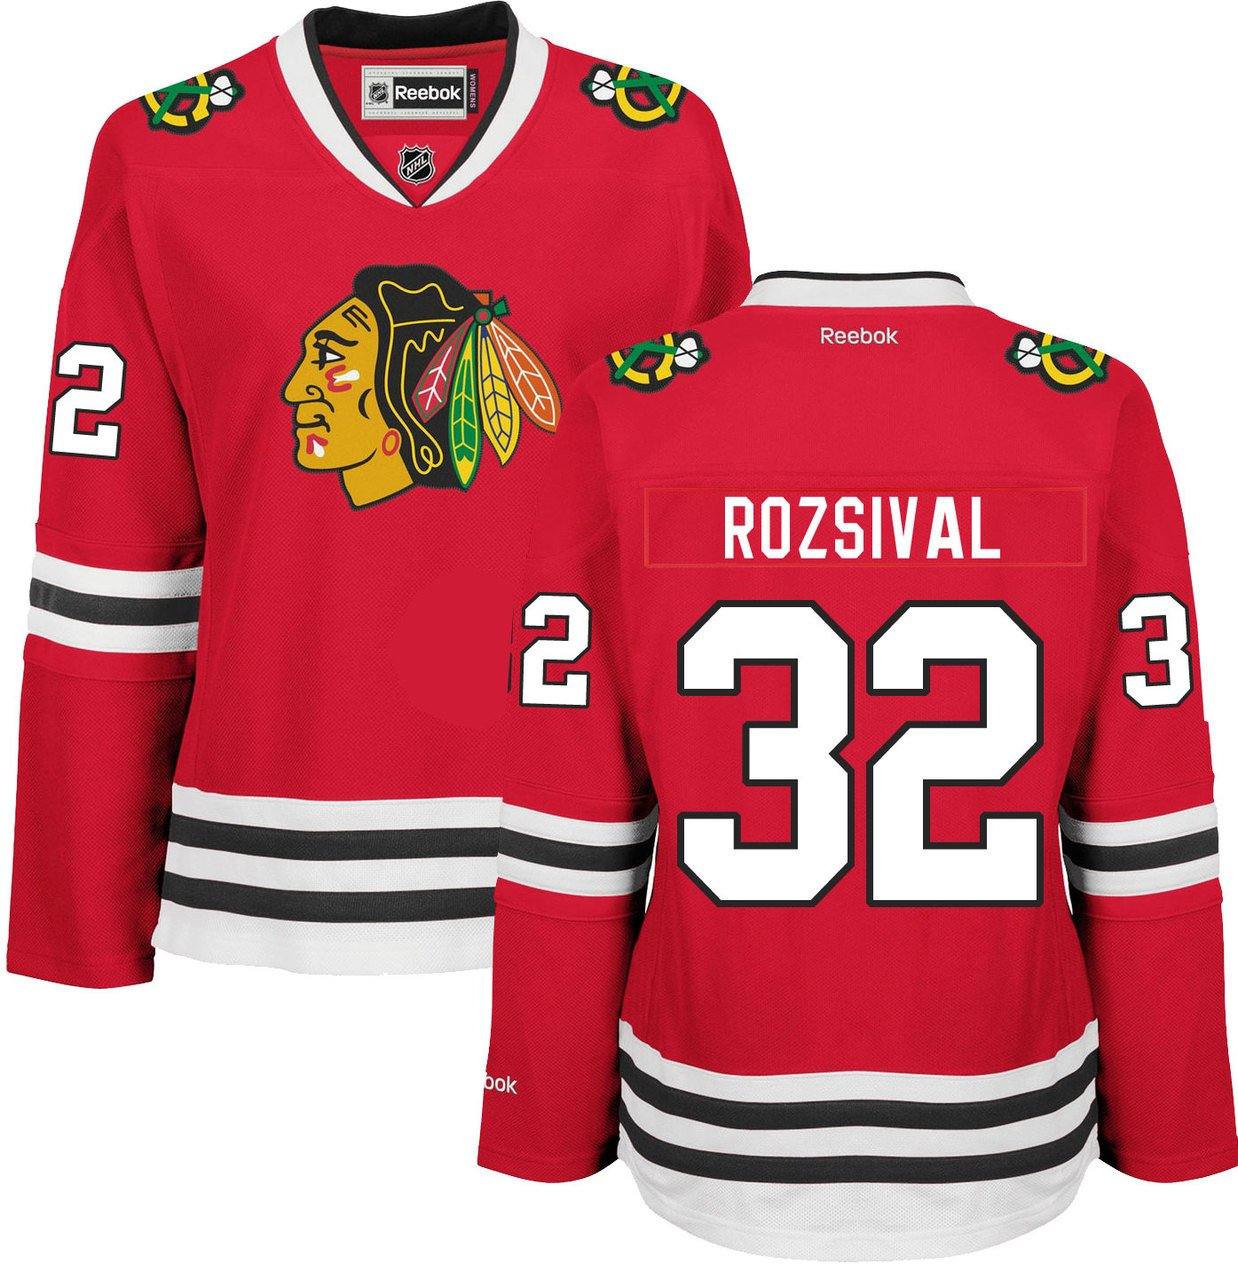 Amazon.com   Michal Rozsival Chicago Blackhawks Home Red Women s Premier  Jersey by Reebok   Sports   Outdoors 51ce1e2f0